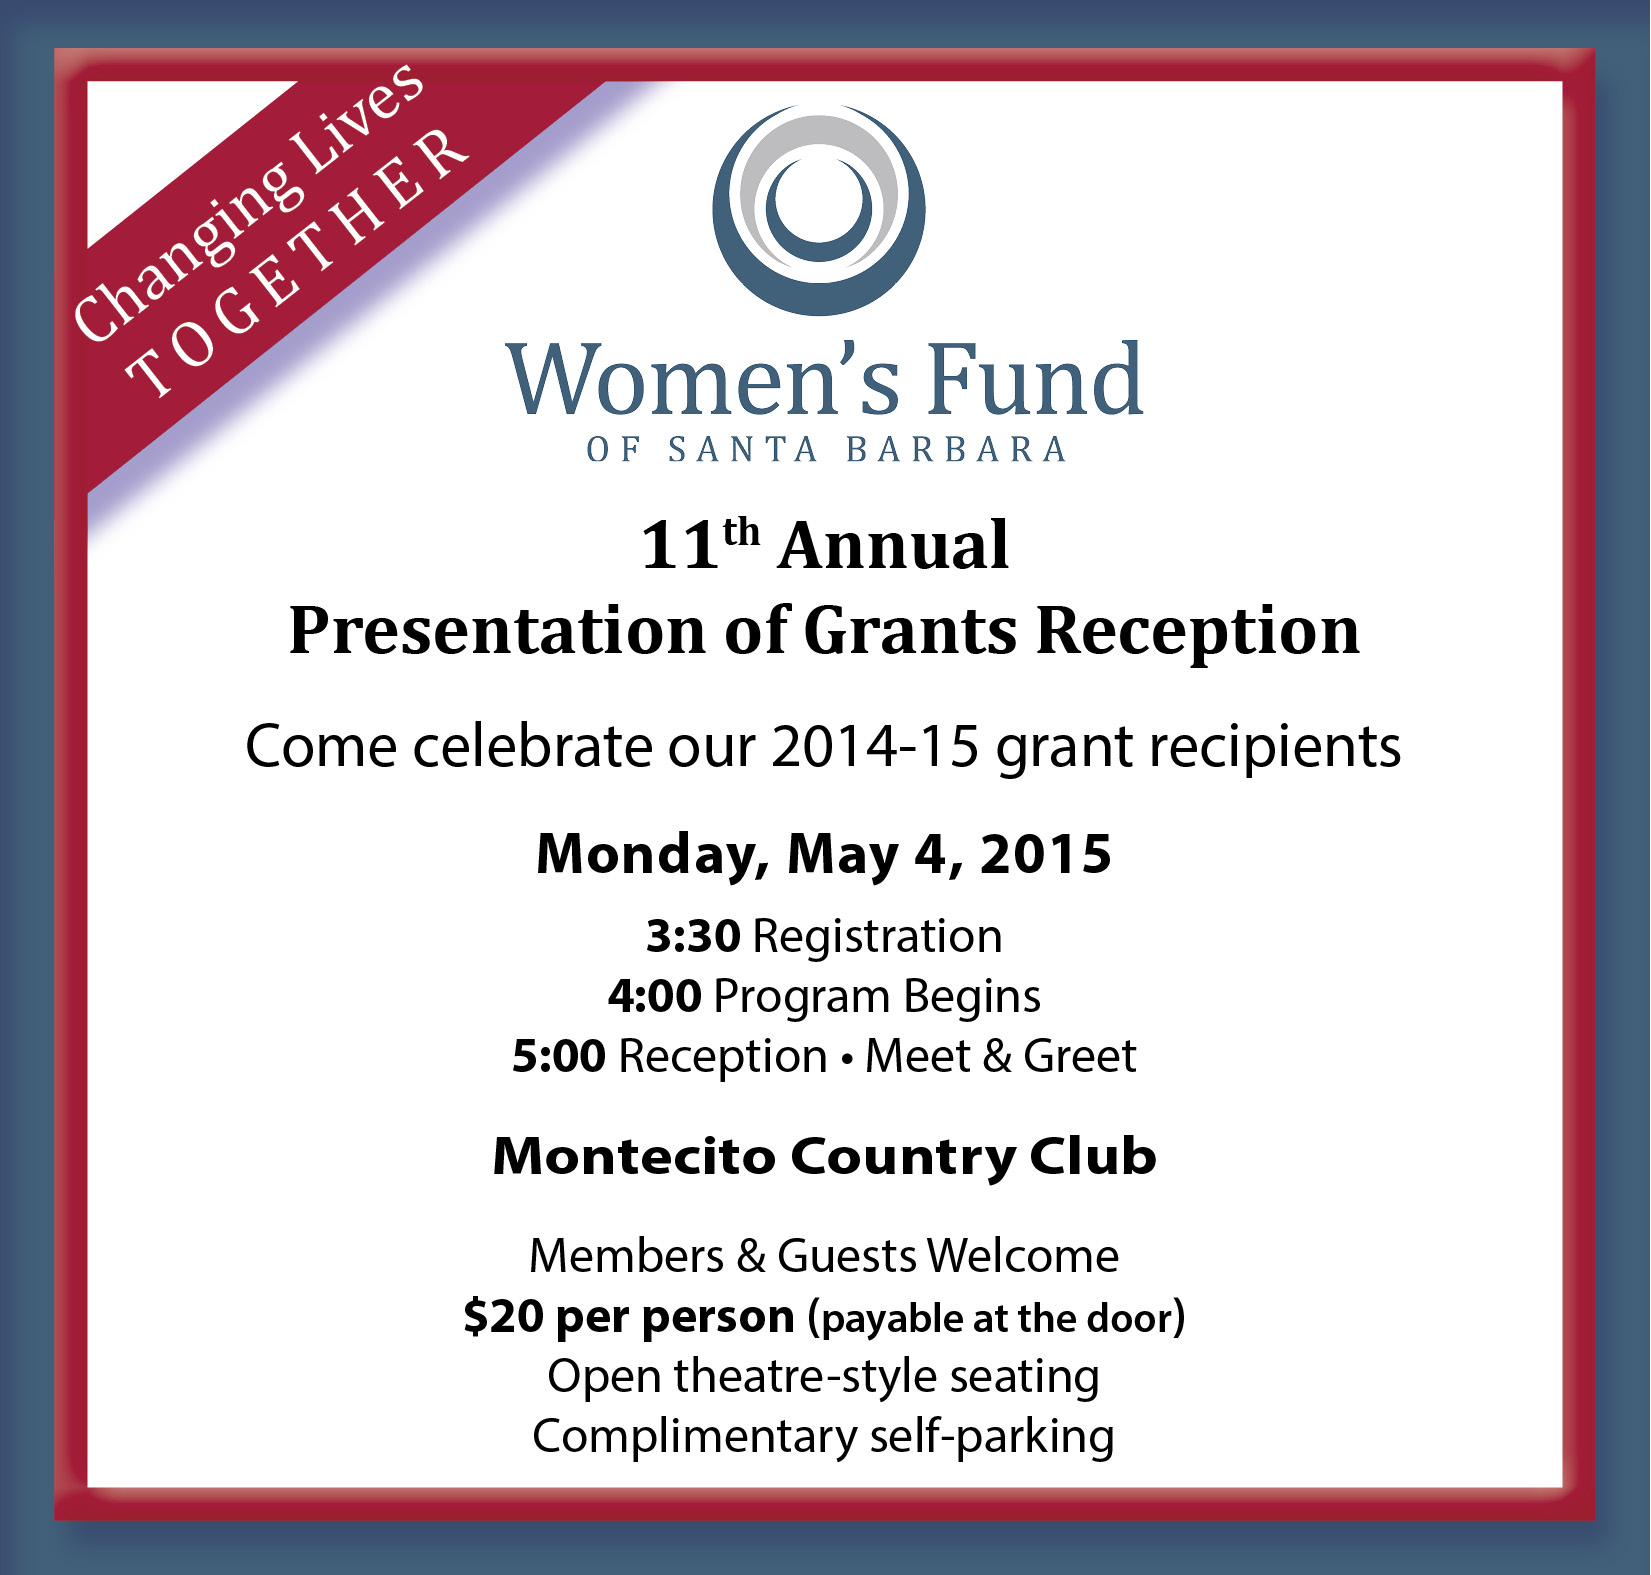 You are invited to the Women's Fund Presentation of Grants